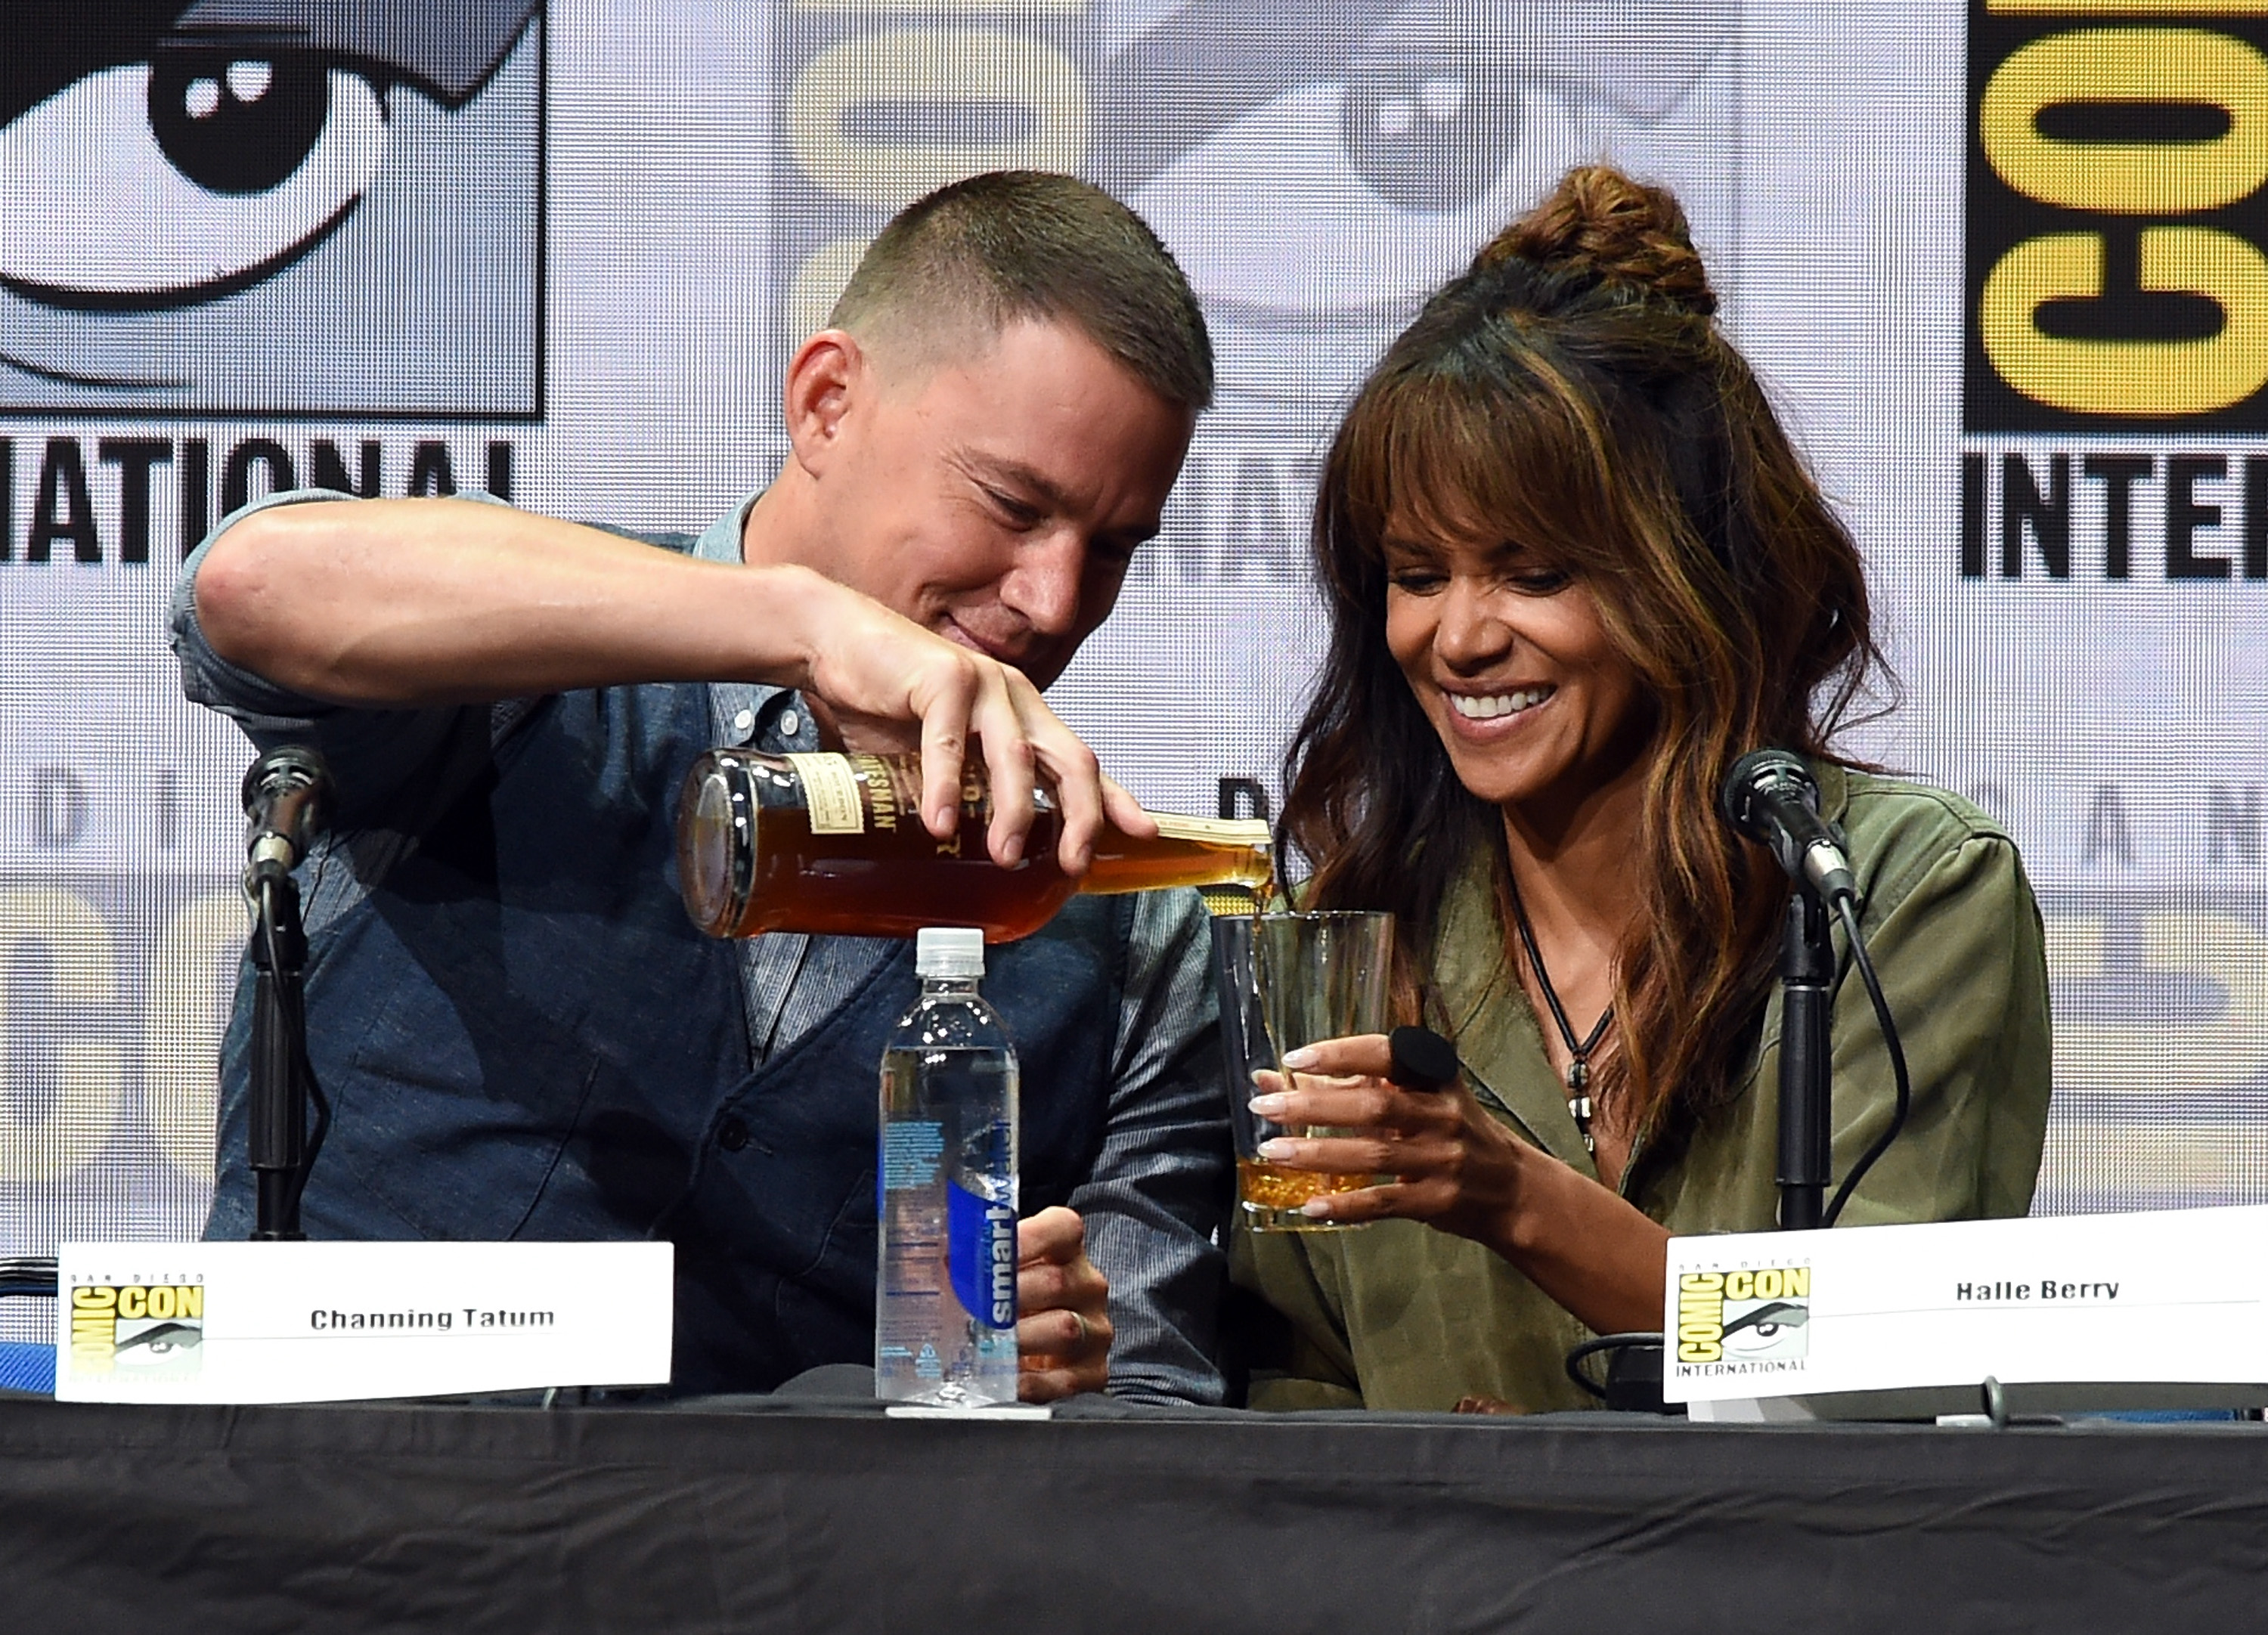 SAN DIEGO, CA - JULY 20:  Actor Channing Tatum (L) pours actor Halle Berry a drink onstage at the 20th Century FOX panel during Comic-Con International 2017 at San Diego Convention Center on July 20, 2017 in San Diego, California.  (Photo by Kevin Winter/Getty Images)